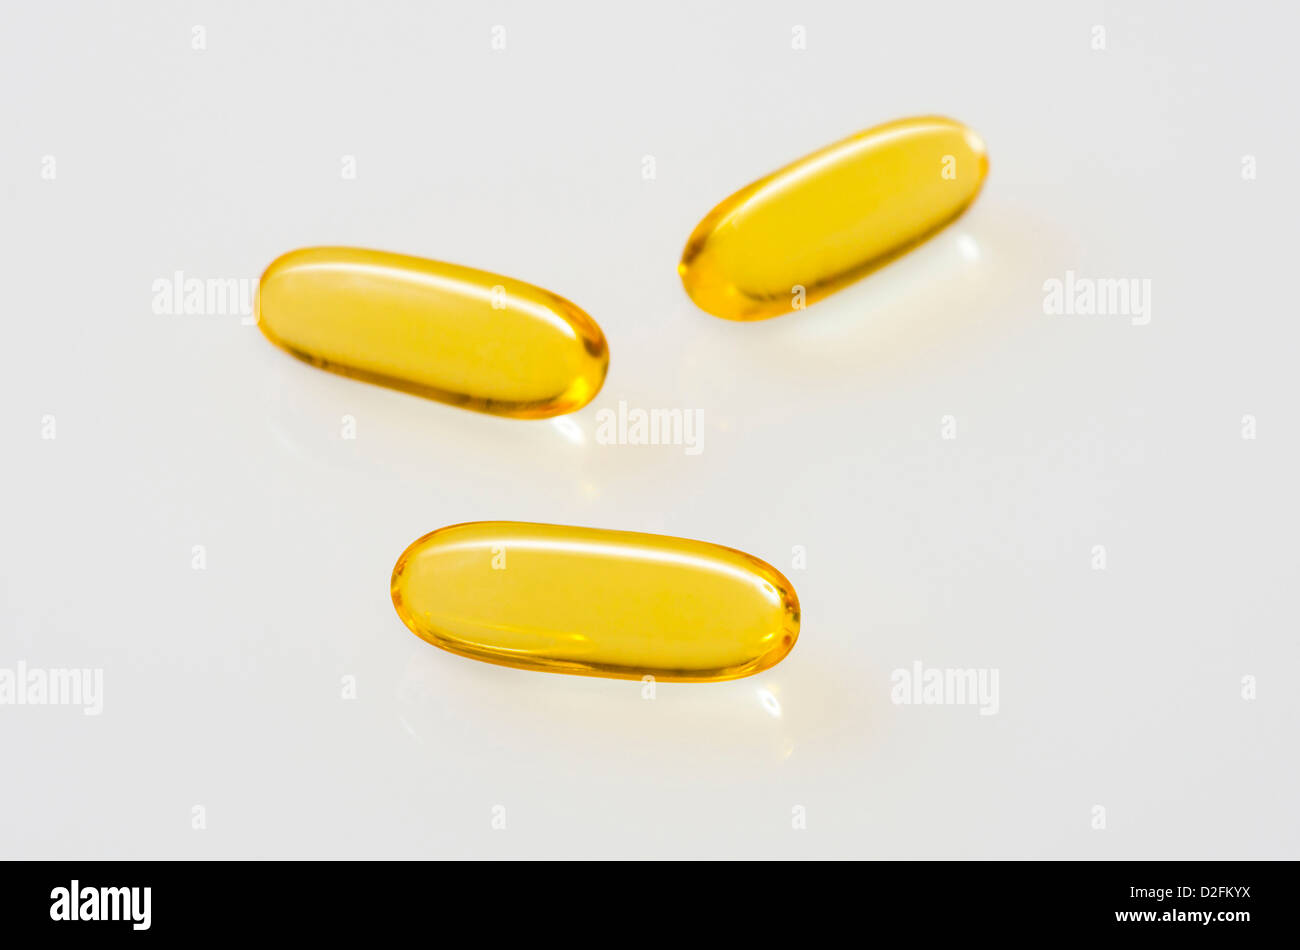 Fish Oil Capsules on an off-white reflective background - Stock Image